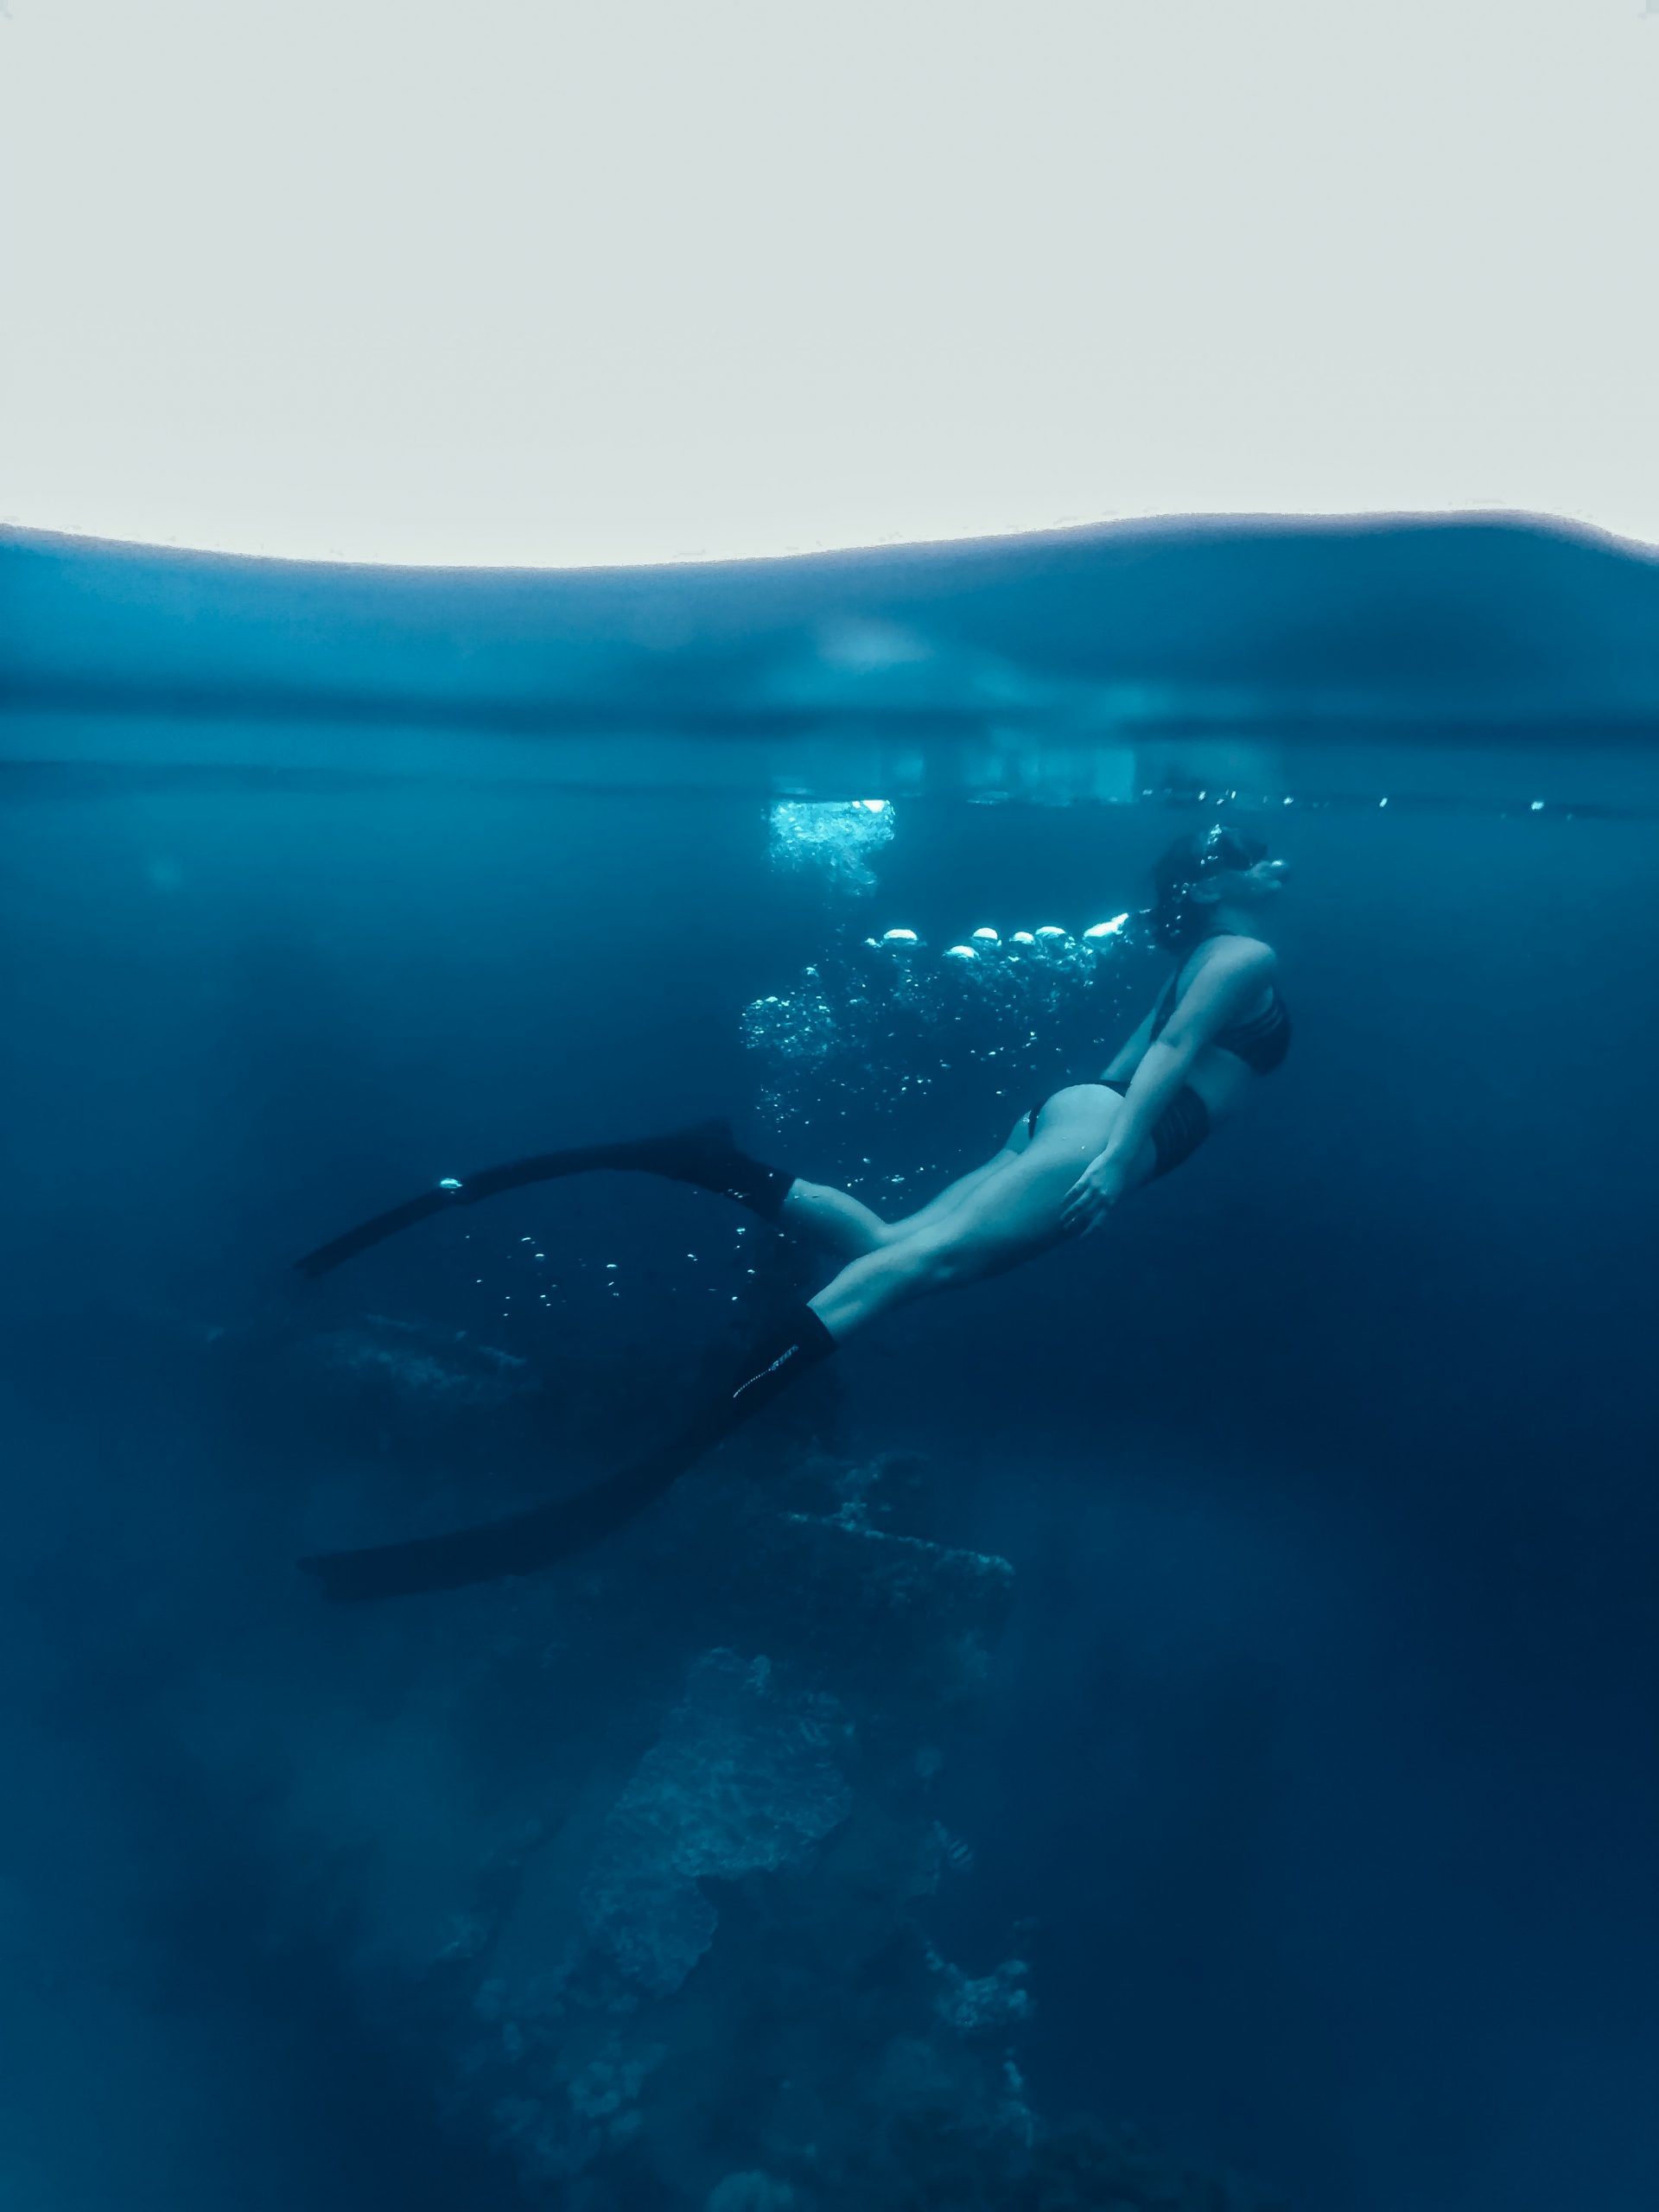 The 10 best diving spots in the world.